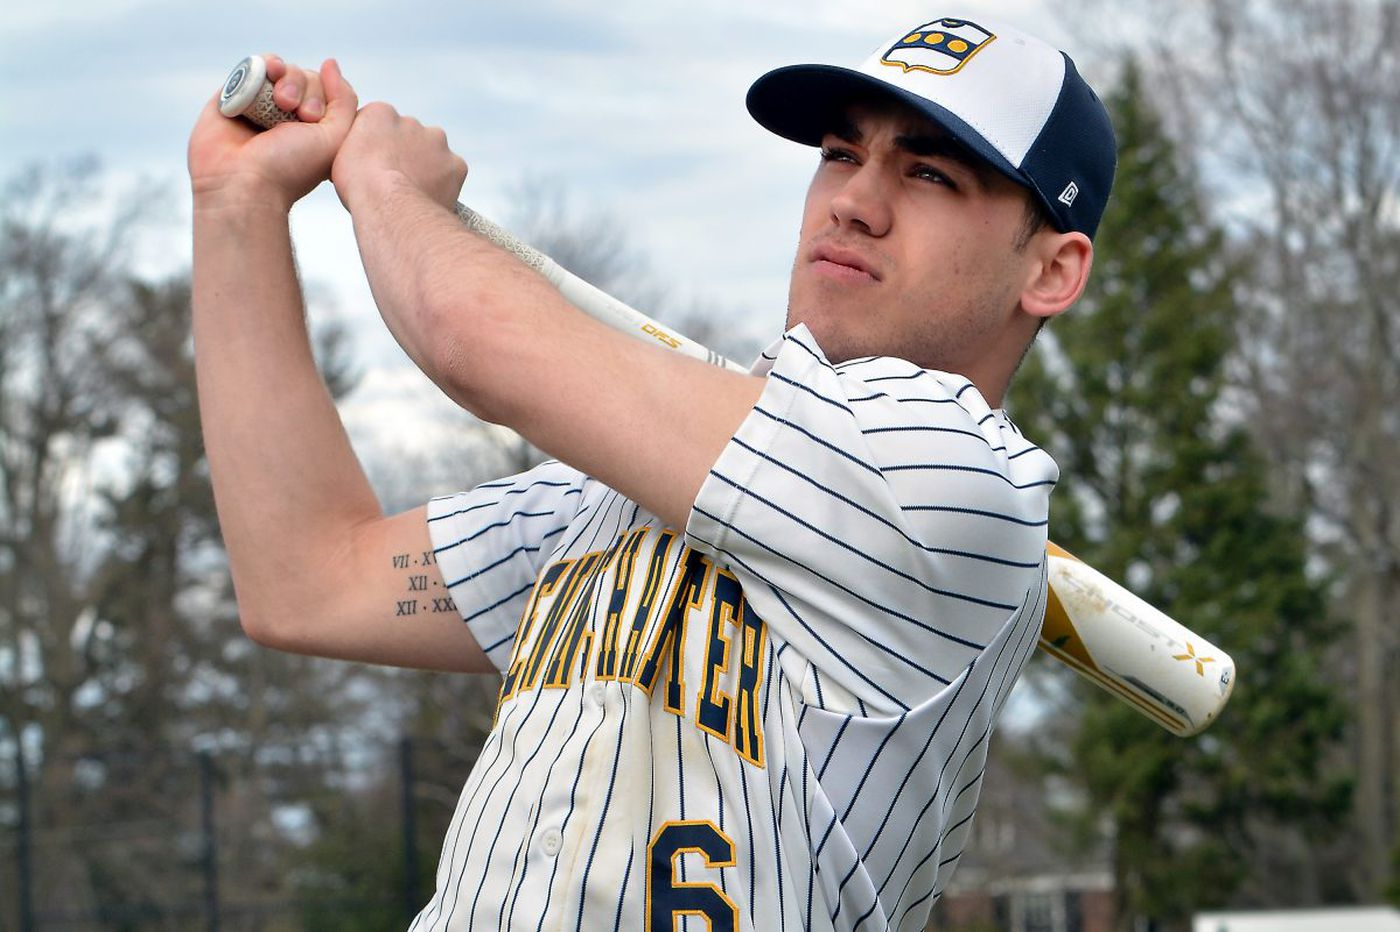 Penn Charter's Mike Siani is being watched closely by major-league scouts